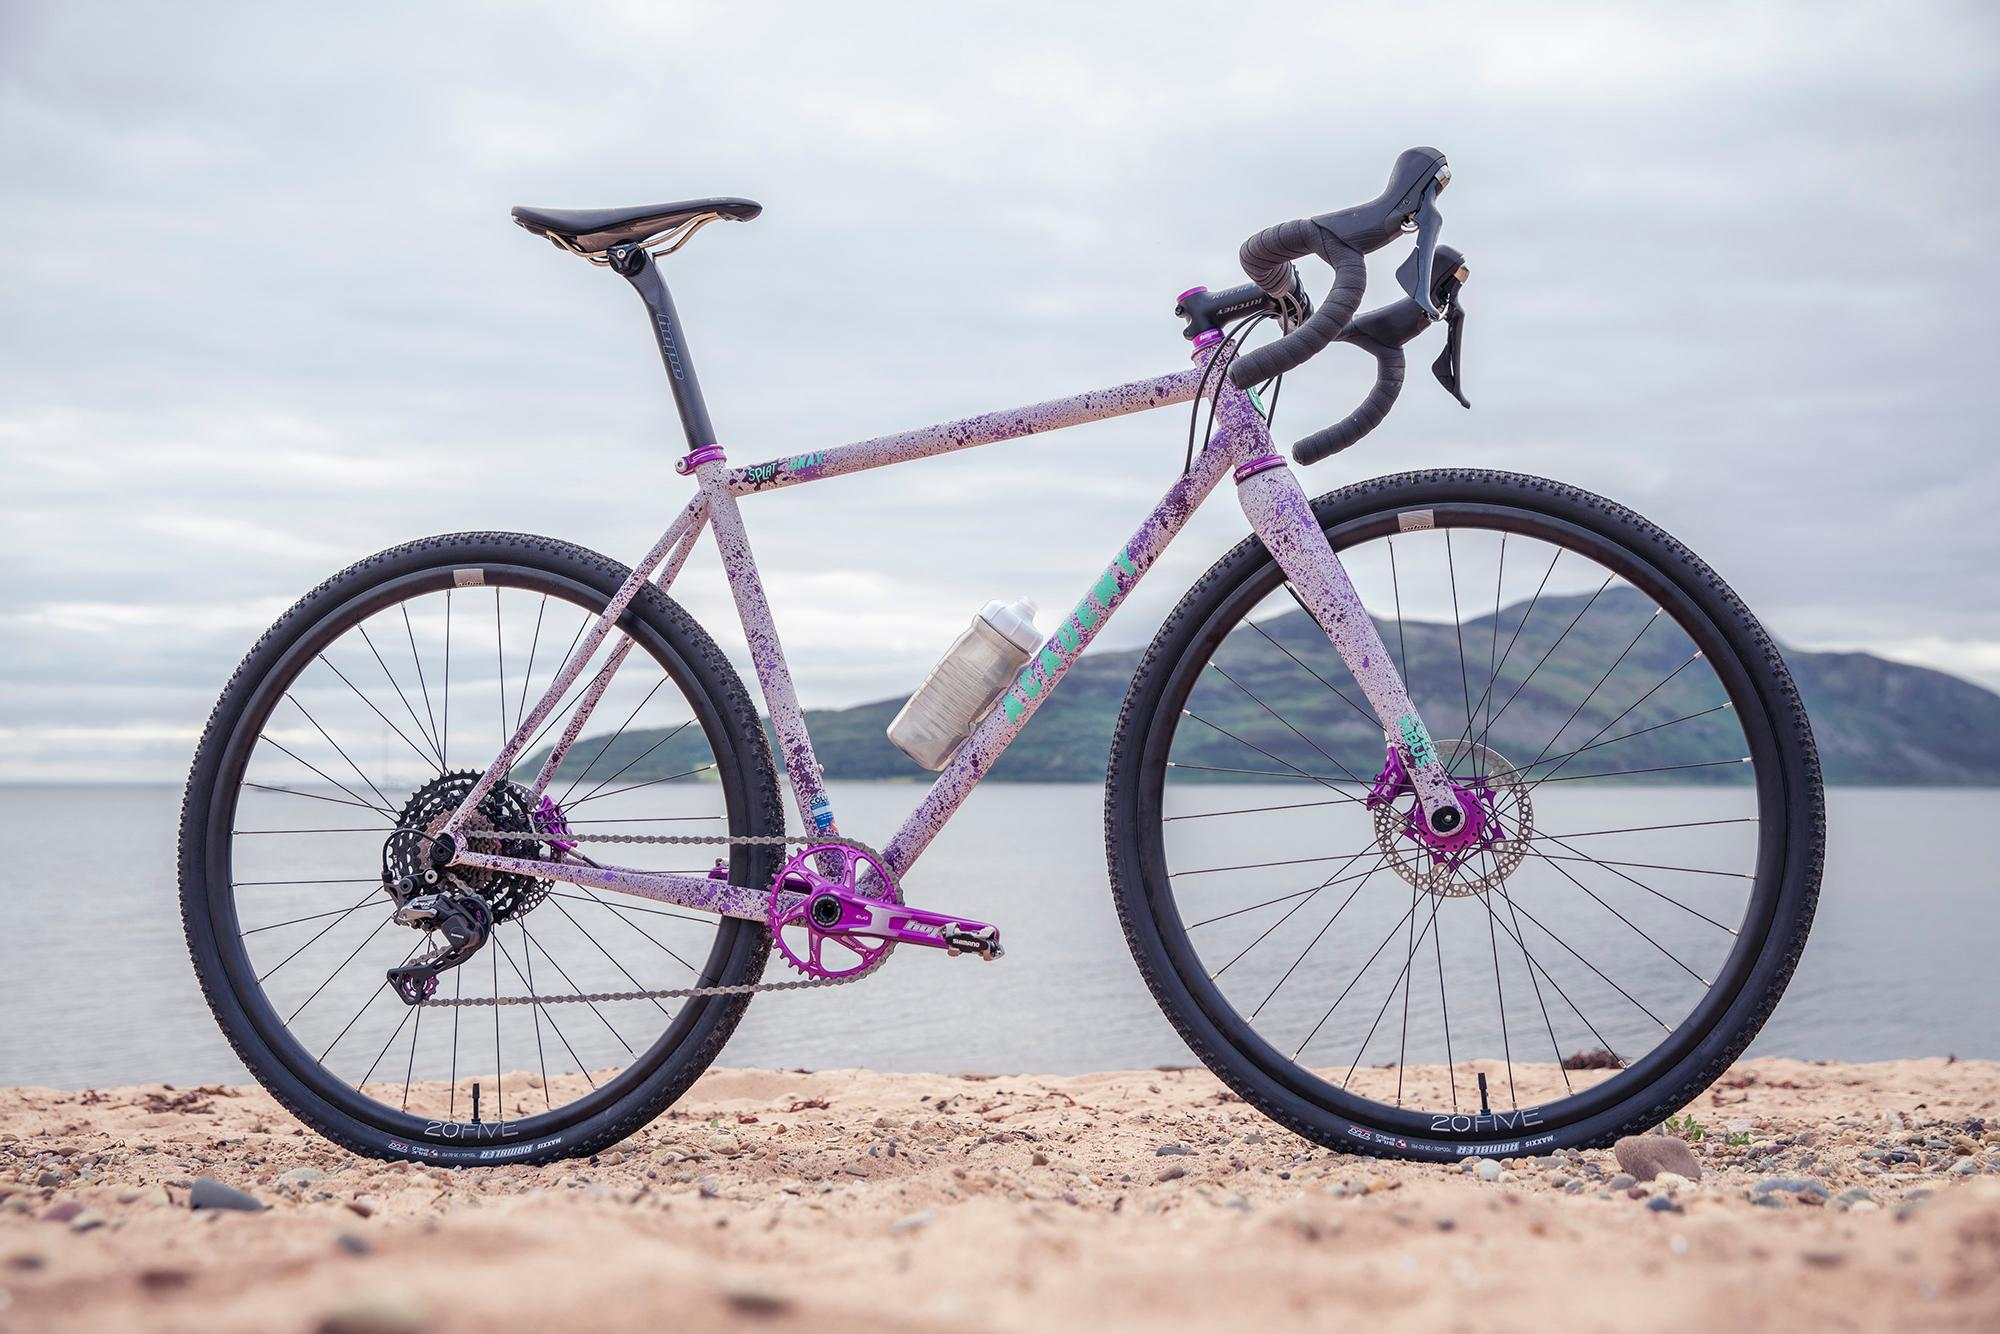 Grinduro Splat Grav custom build by The Bicycle Academy.Grinduro, Isle of Arran, Scotland, 13 July 2019